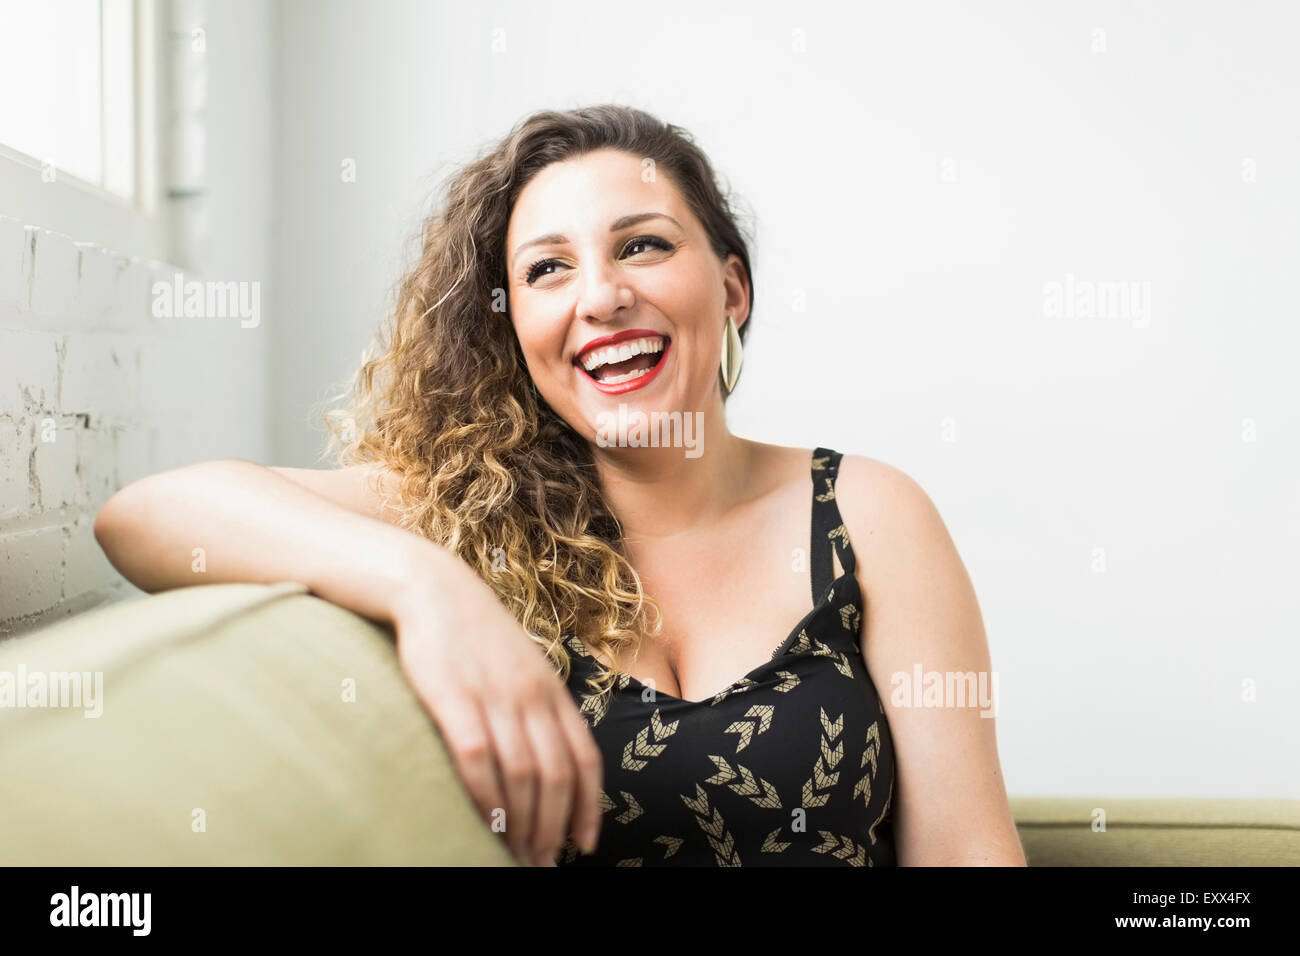 Woman looking away and laughing - Stock Image